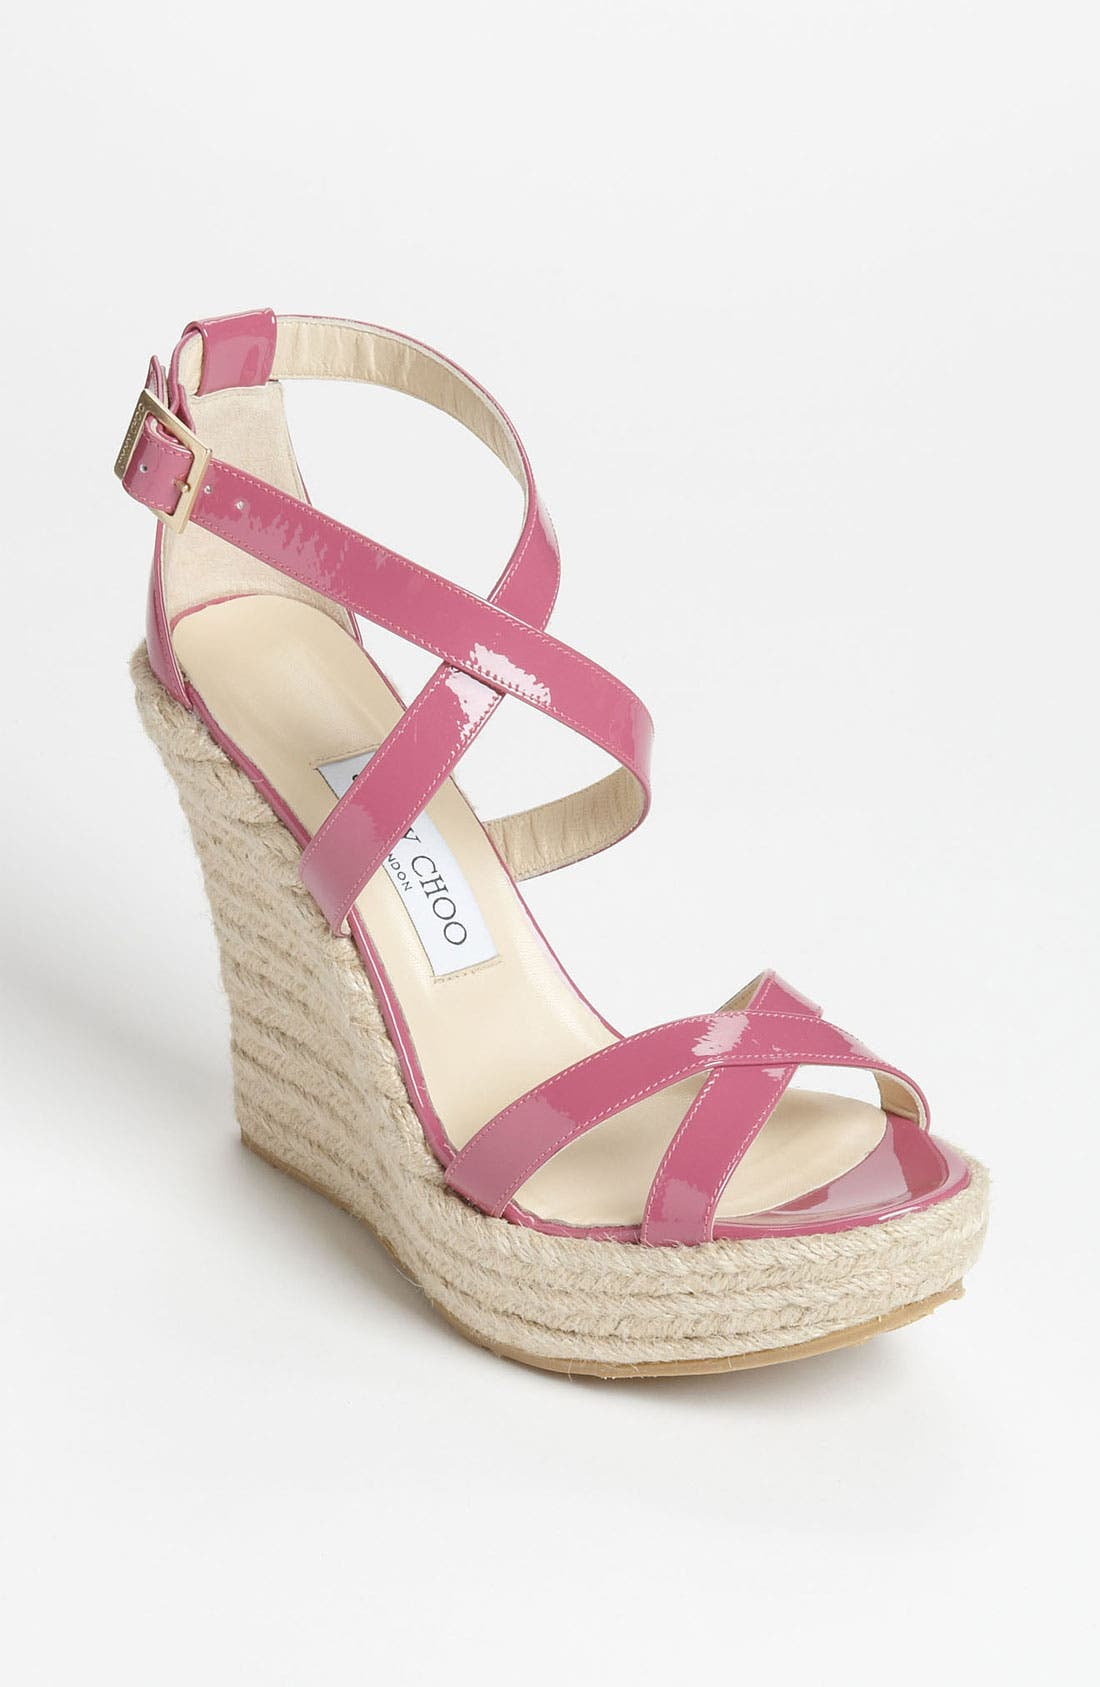 Main Image - Jimmy Choo 'Porto' Wedge Sandal